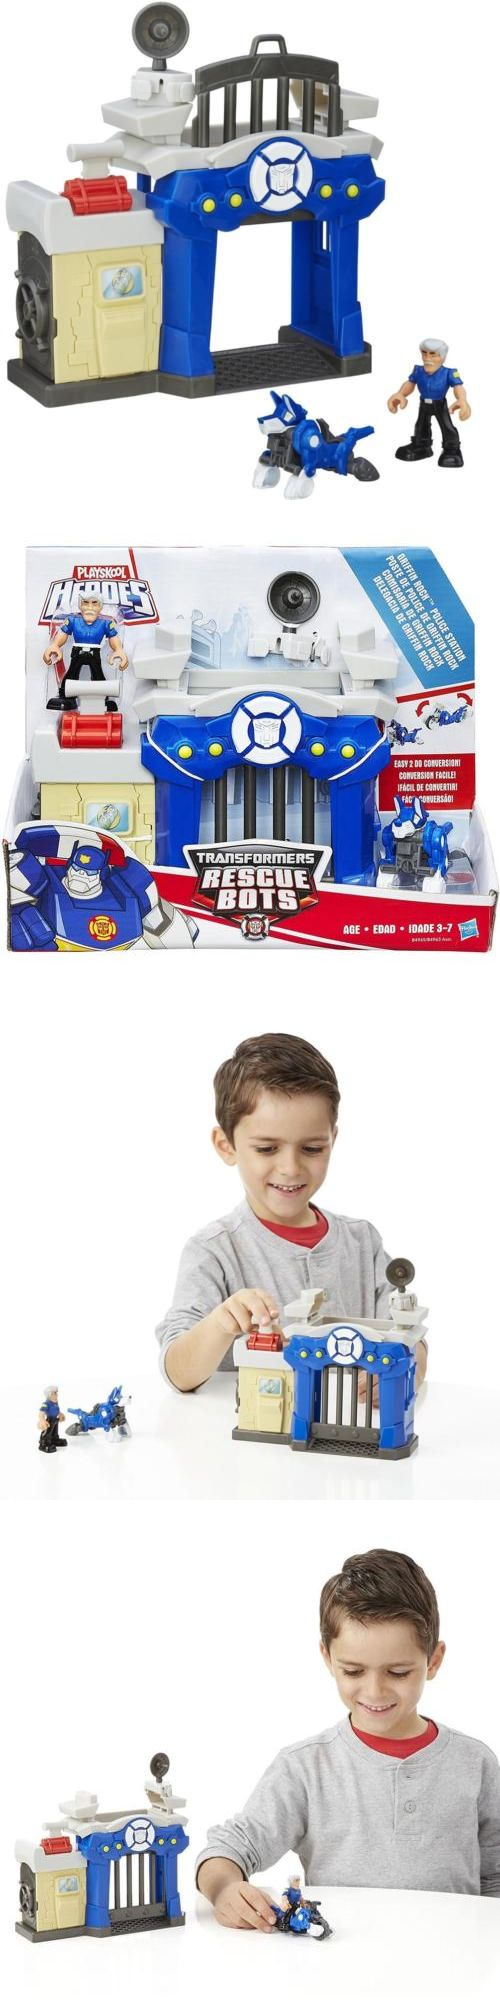 Playskool 2576: New Playskool Heroes Transformers Police Station Rescue Bots Griffin Rock Kidz -> BUY IT NOW ONLY: $30 on eBay!